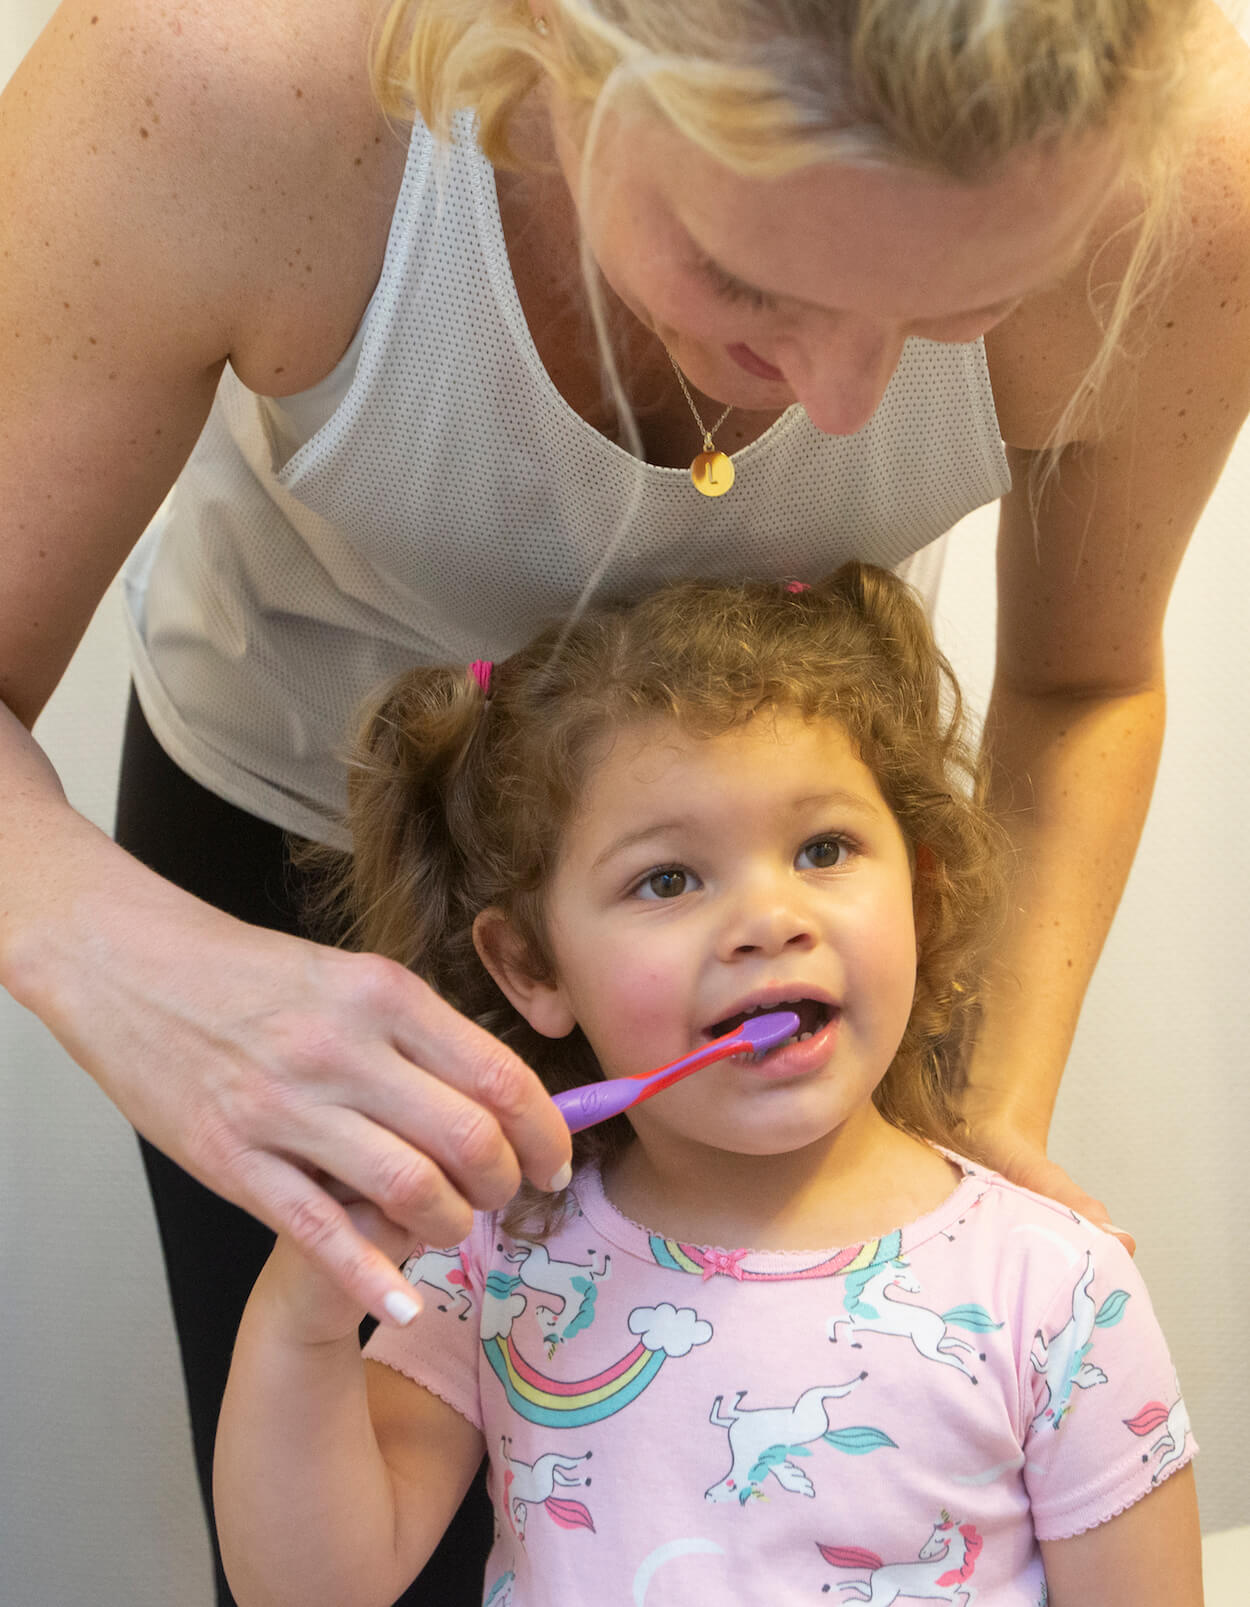 Shannon Alfonso helps her 2-year-old daughter, Lizzie, brush her teeth twice a day.